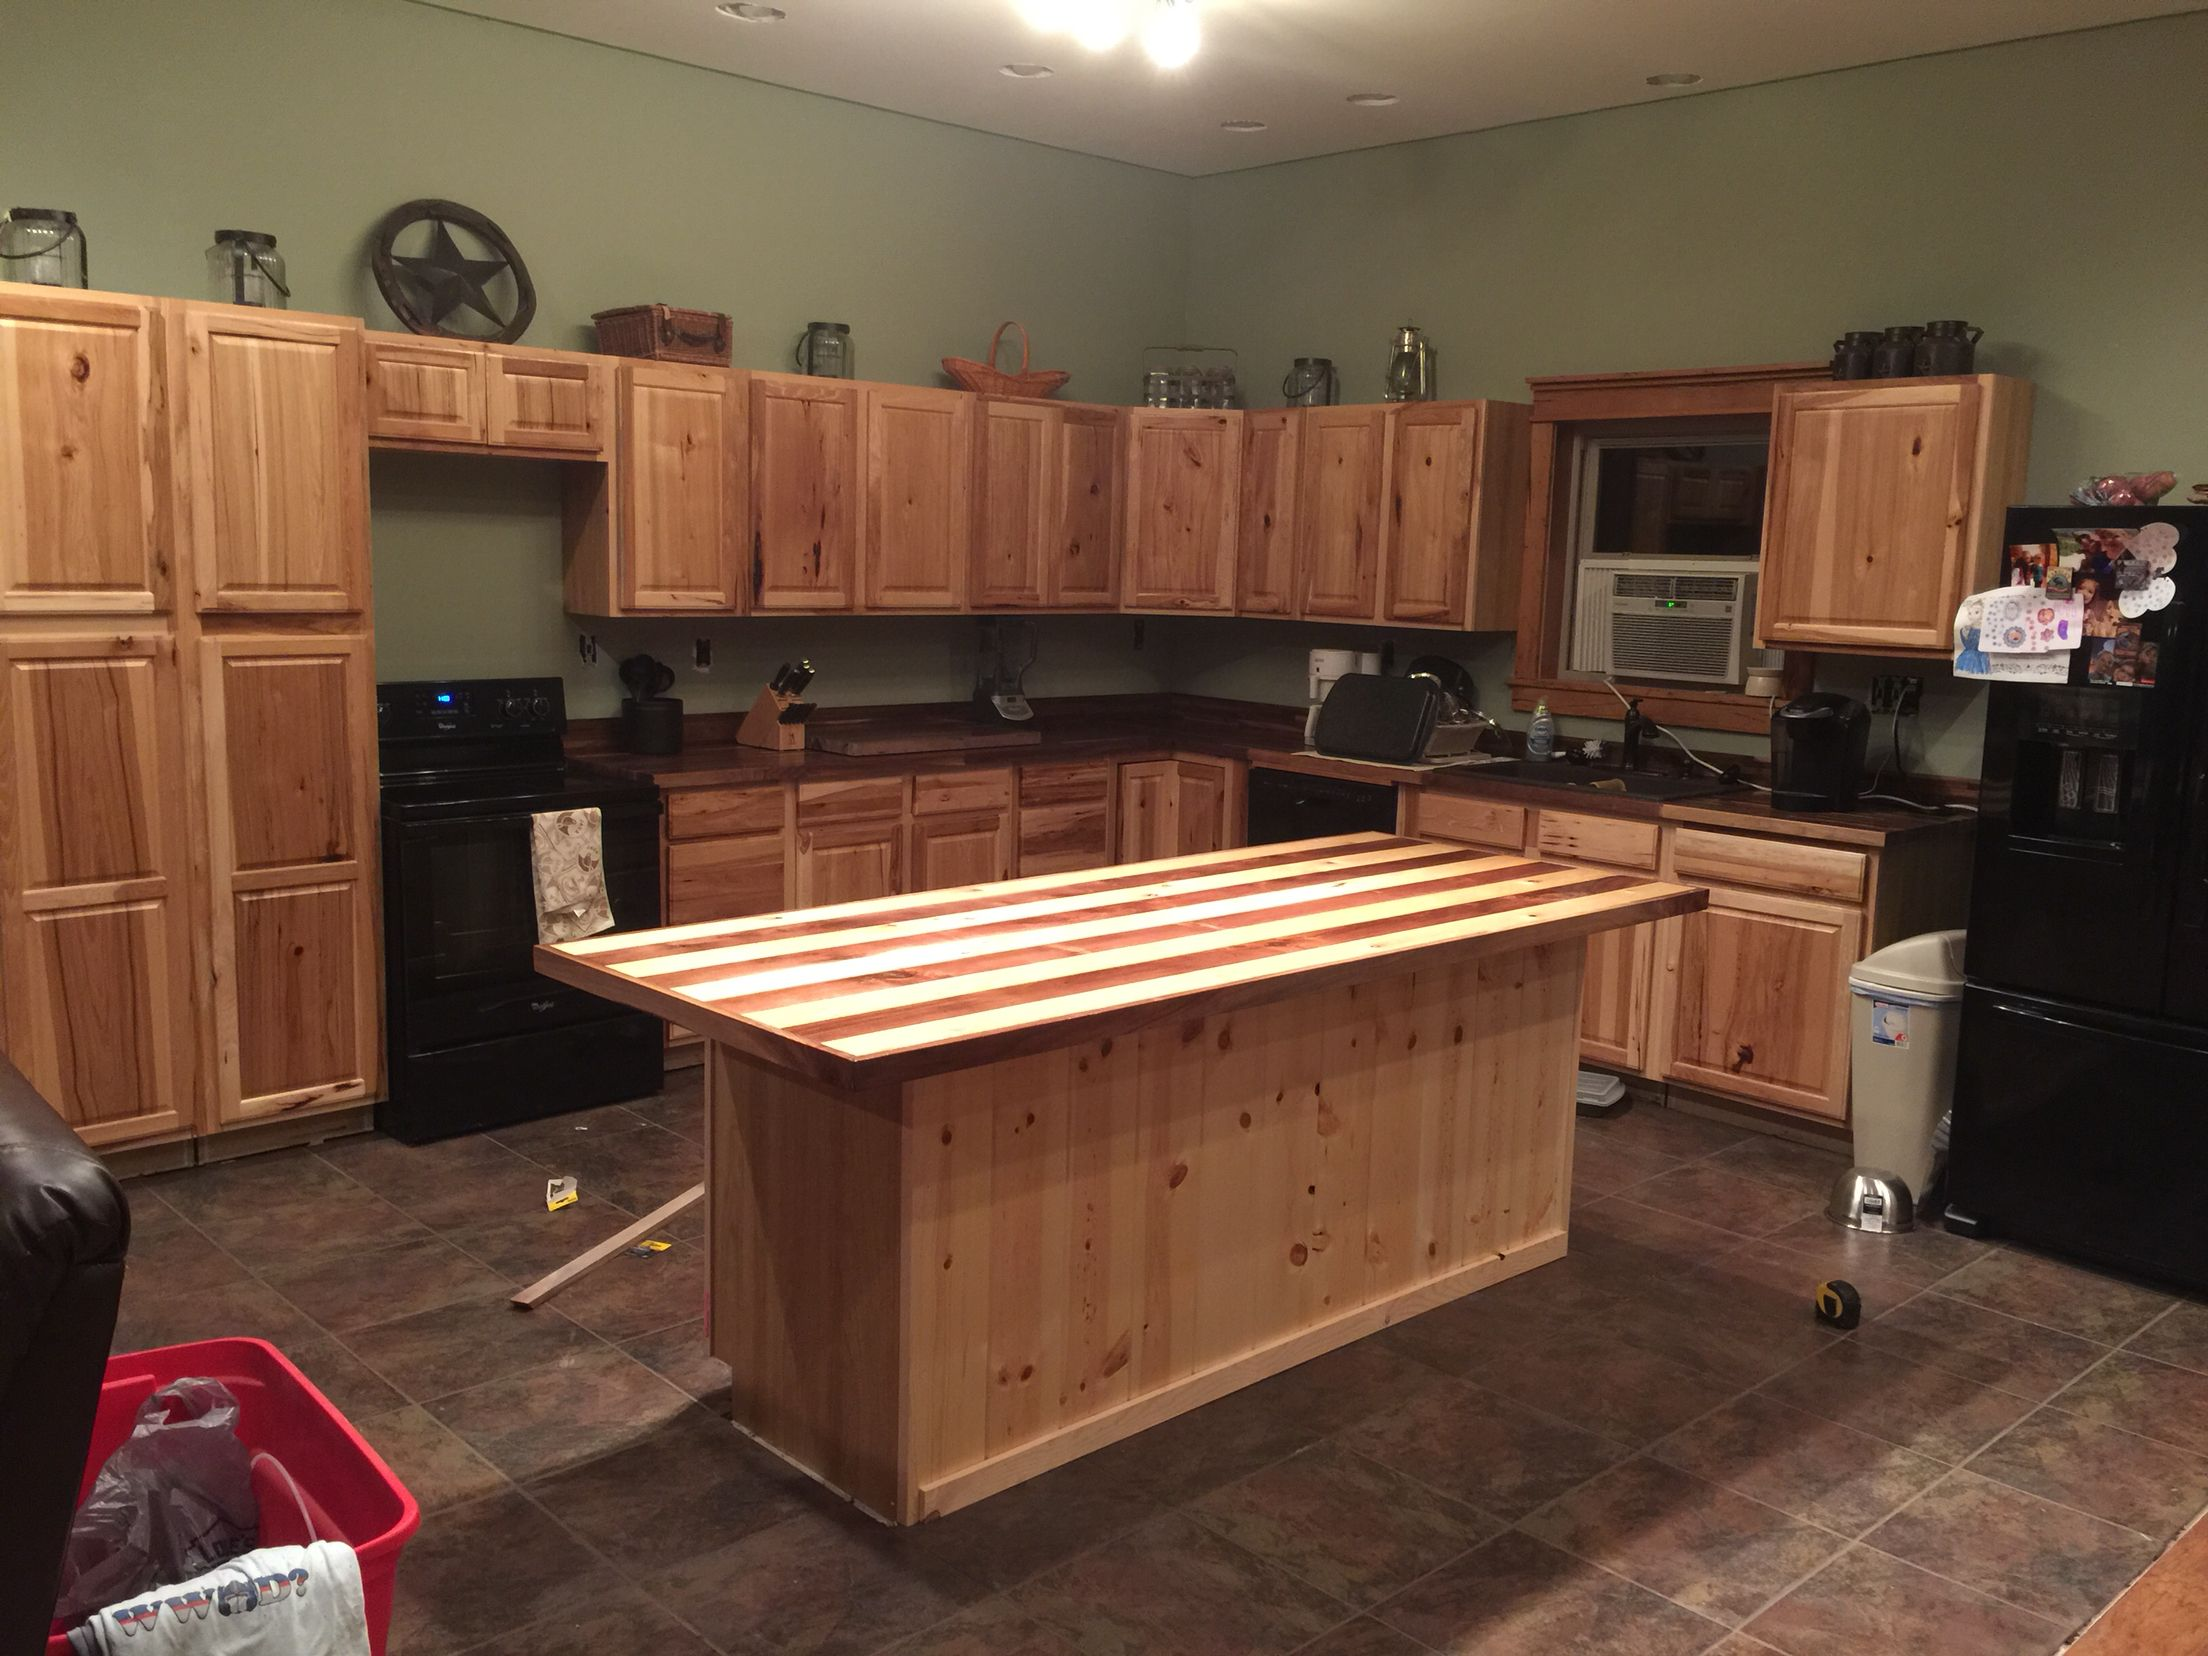 Kitchen Butcher Block Cabinets : Kitchen overview; Hickory Cabinets from Lowes, Walnut butcher block countertop from Lumber ...